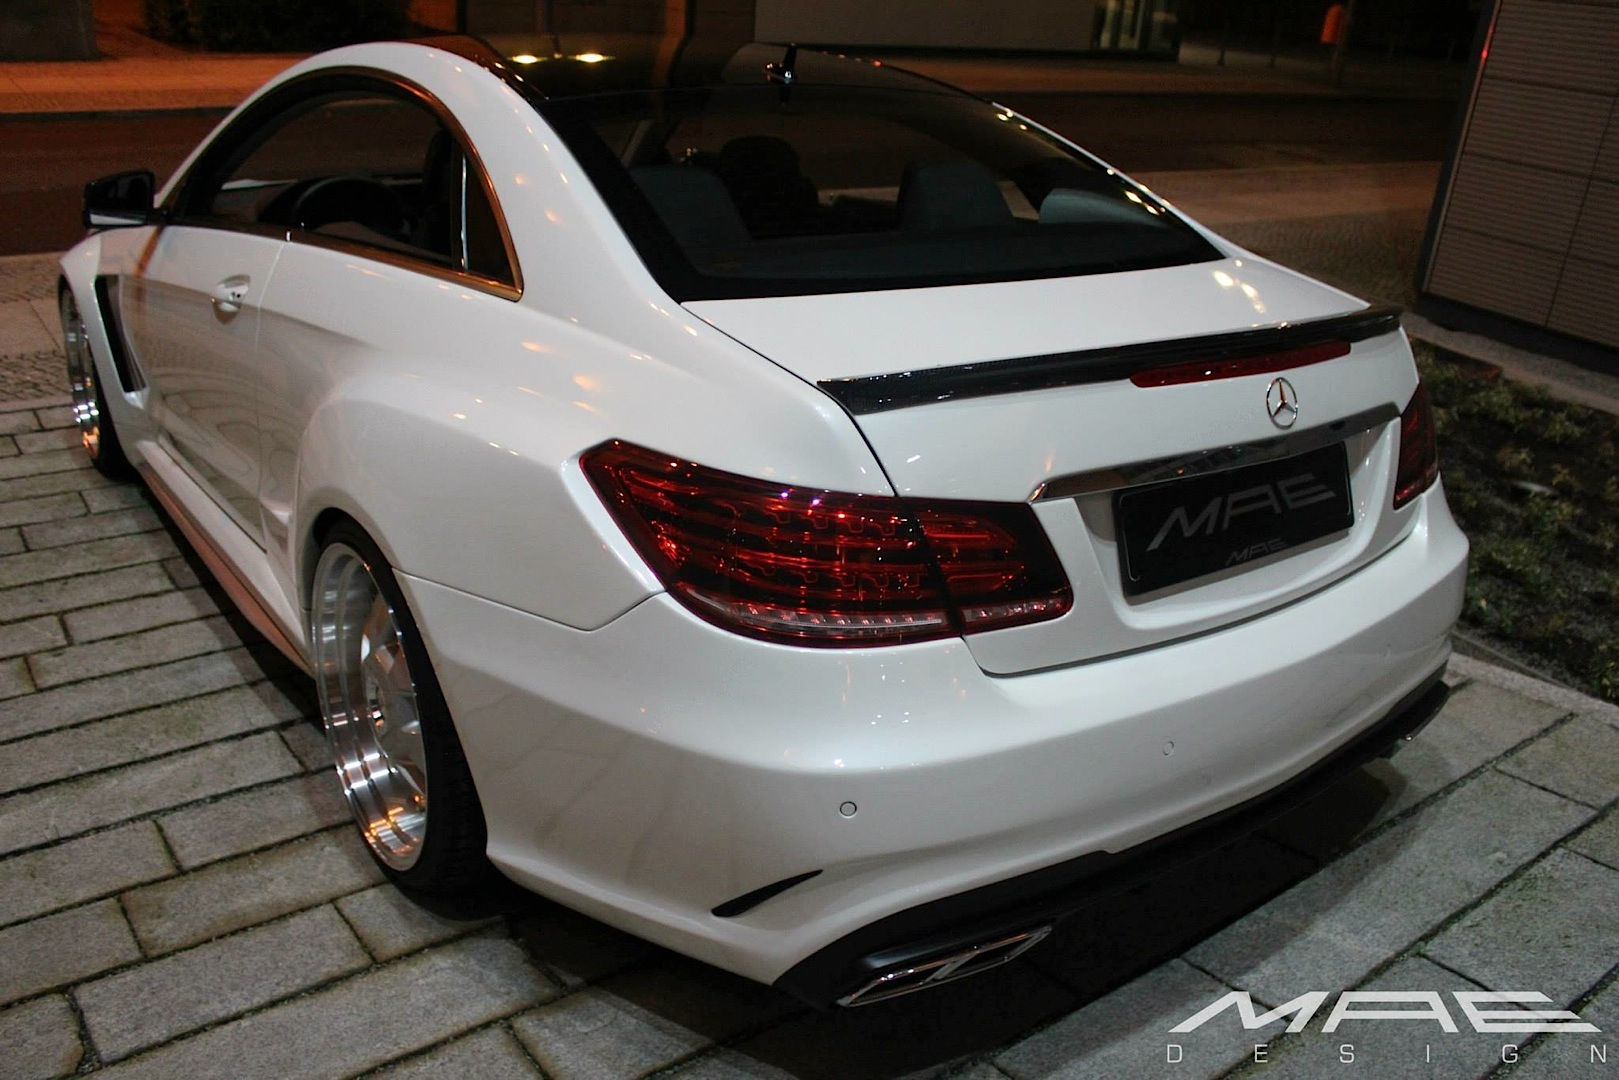 高檔寬車體風格 Mae Design Mercedes Benz E Class Coupe G7 車庫柒號